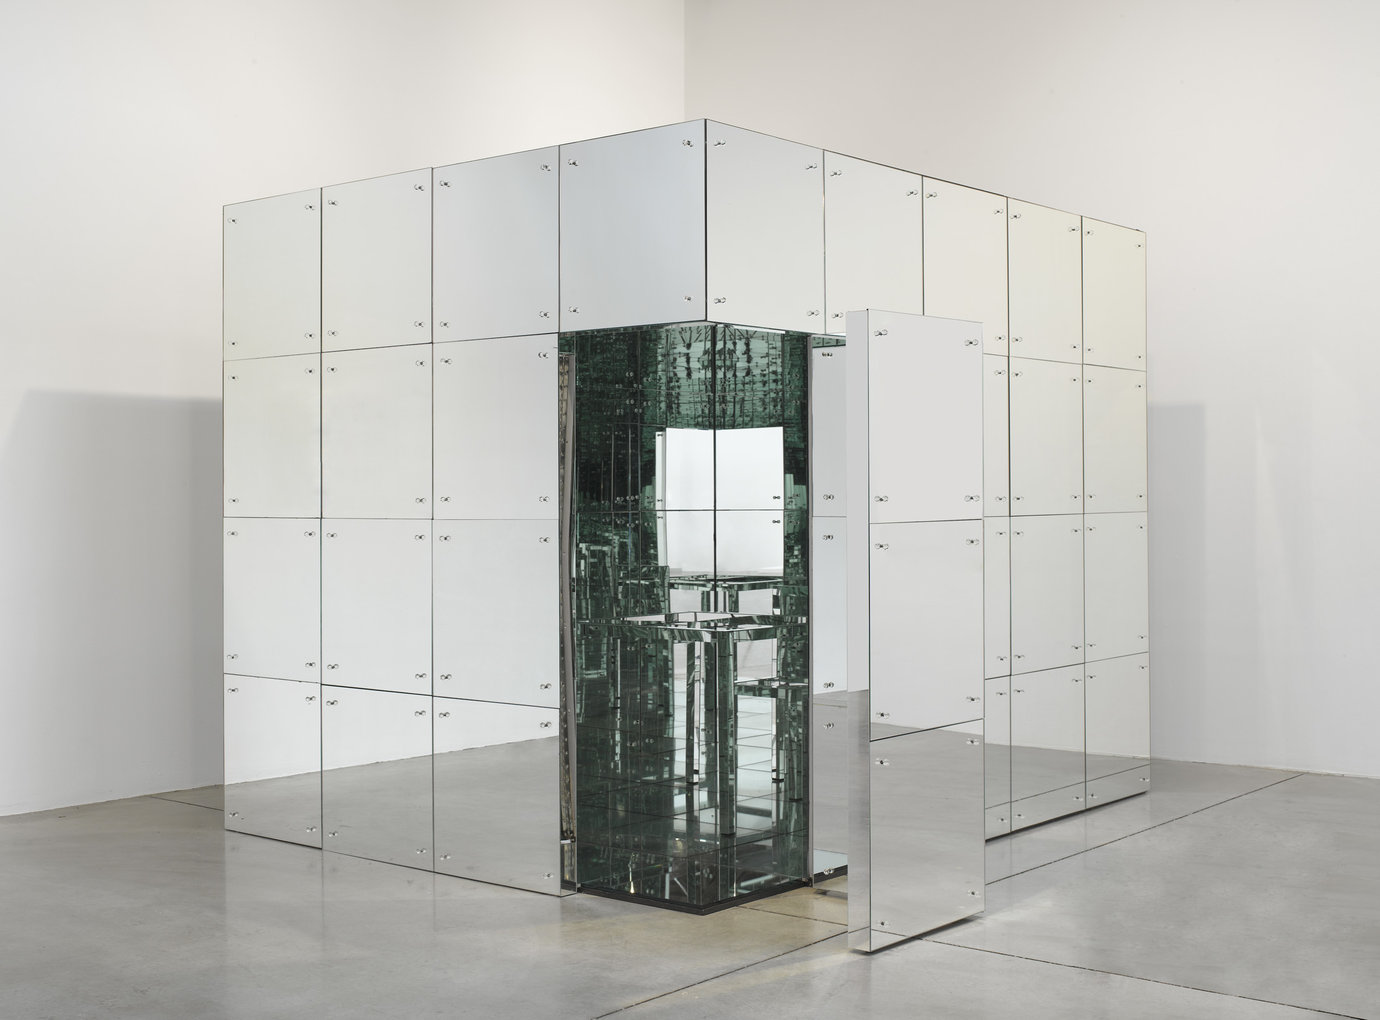 ", 1966. Mirrors on wooden frame, 96"" x 96"" x 10' (243.8 cm x 243.8 cm x 304.8 cm)."